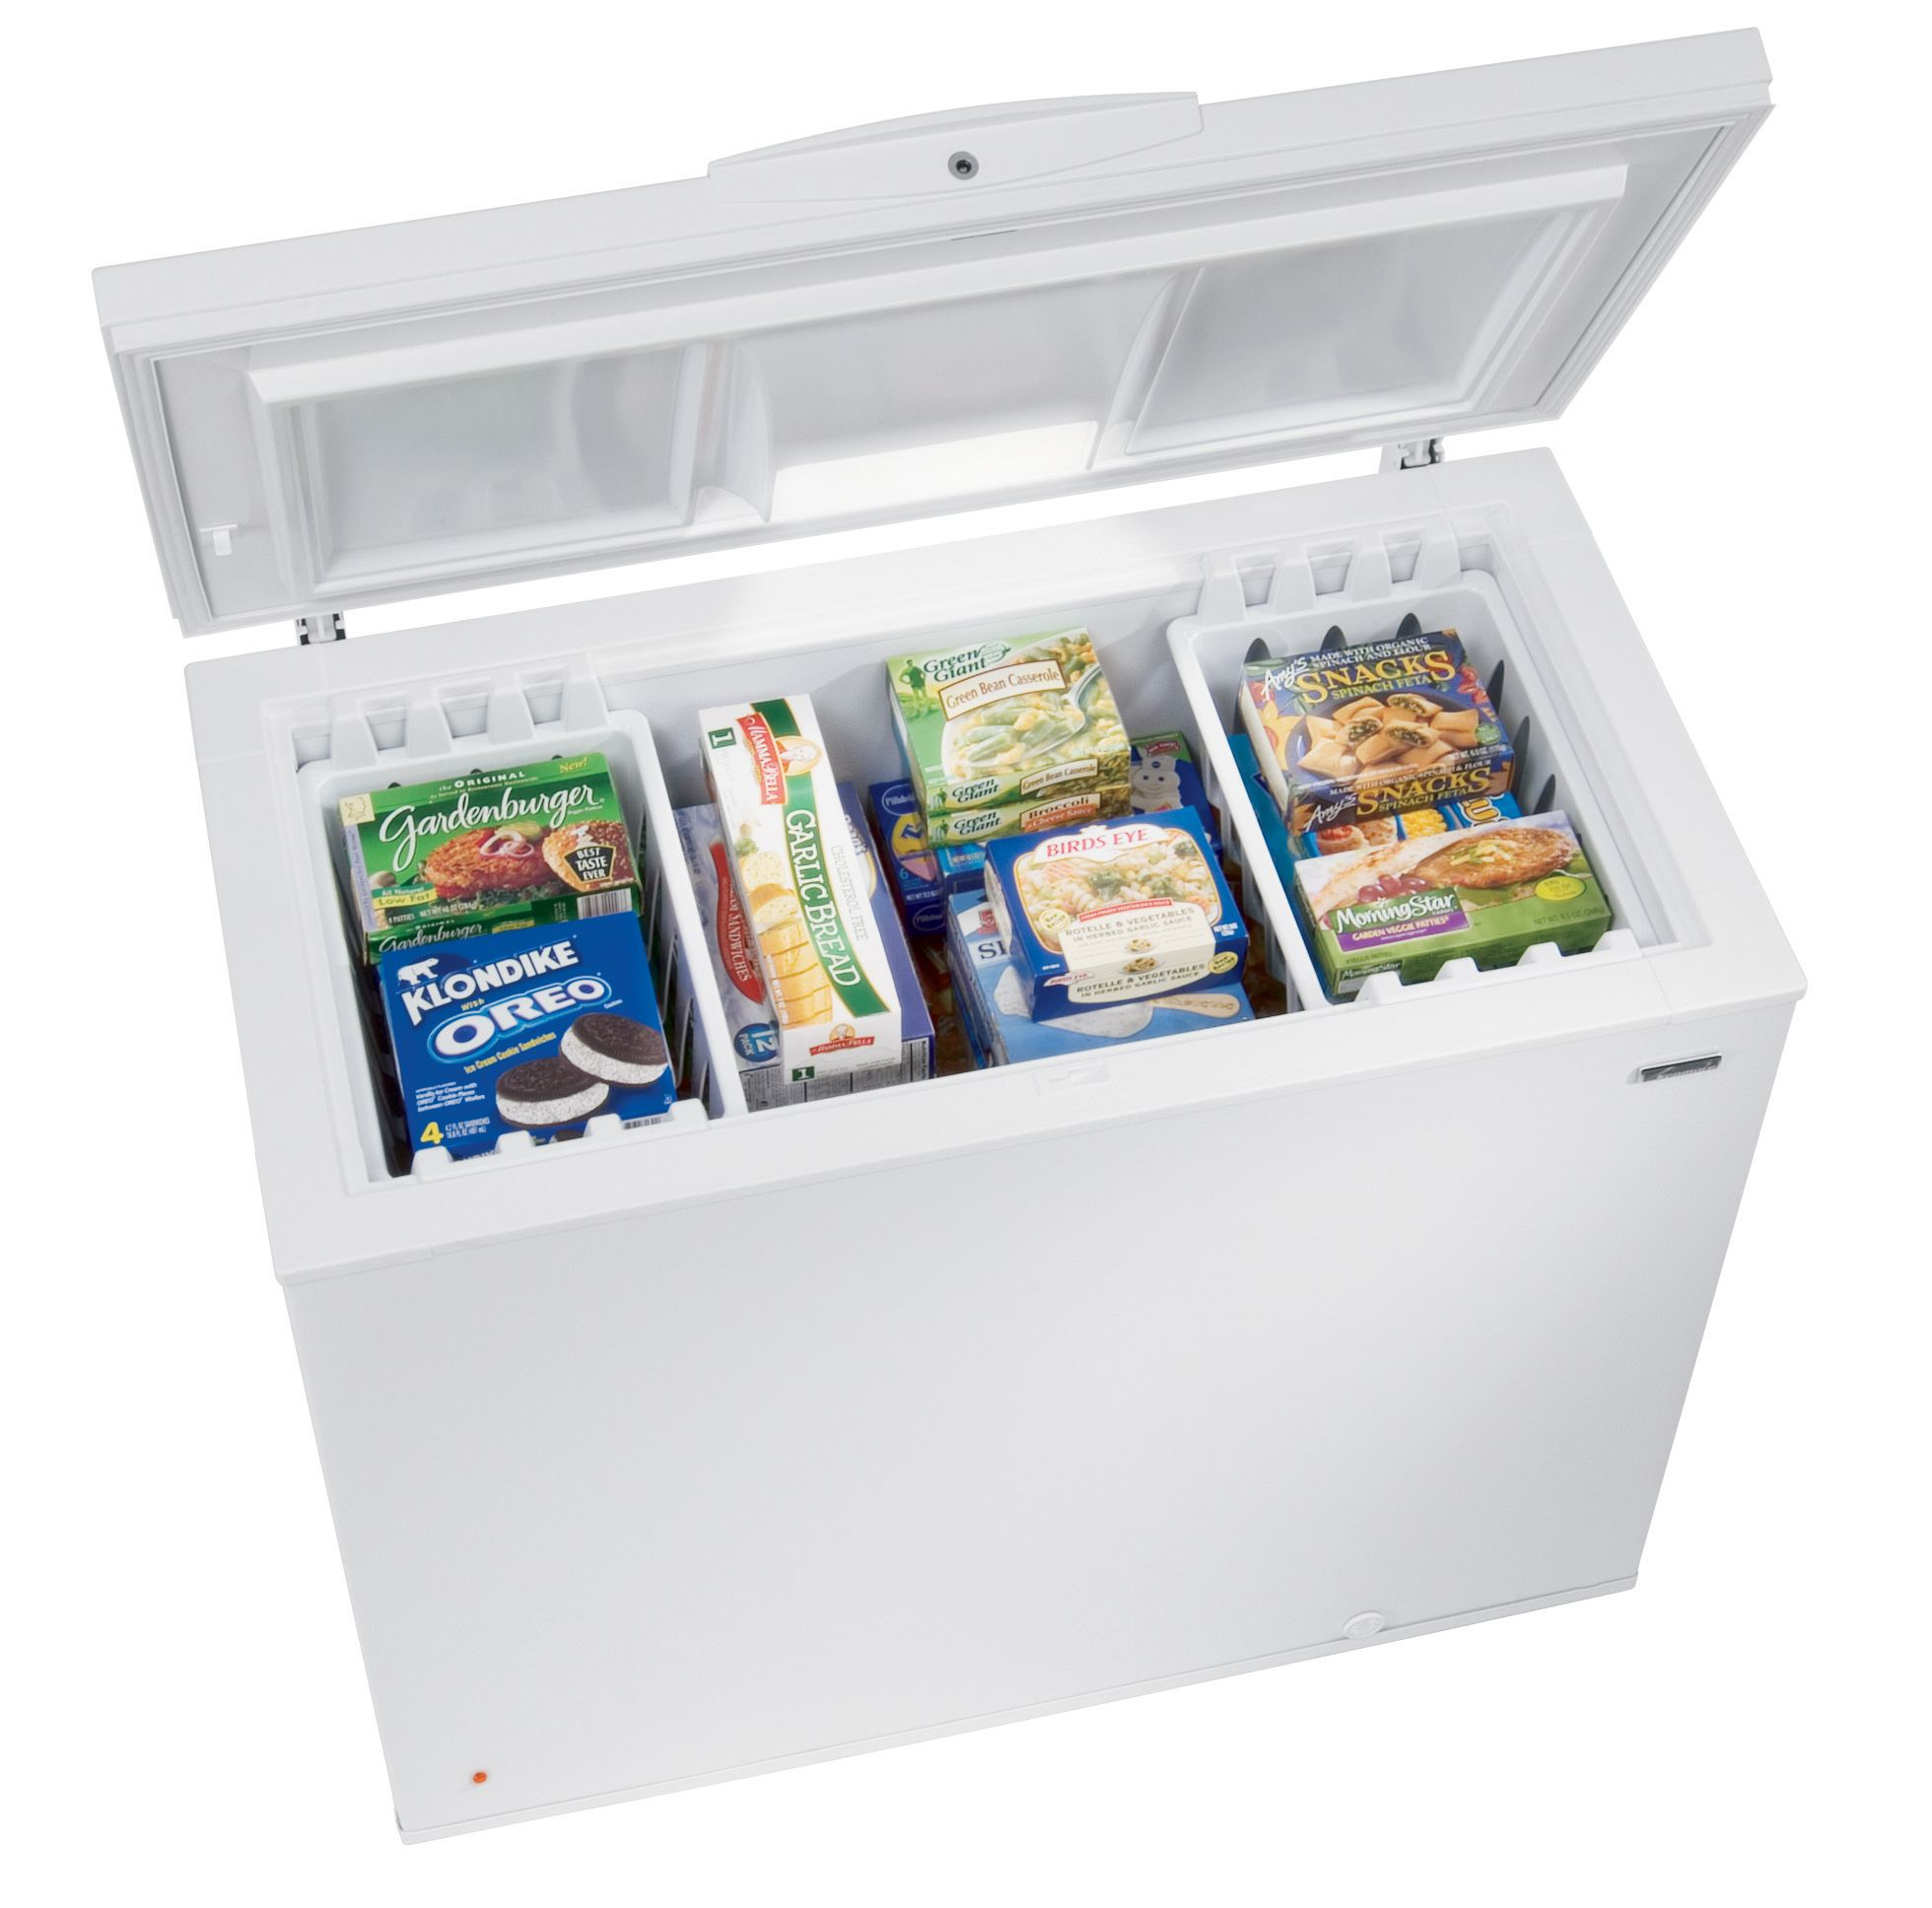 Kenmore 8.8 cu. ft. Chest Freezer - White